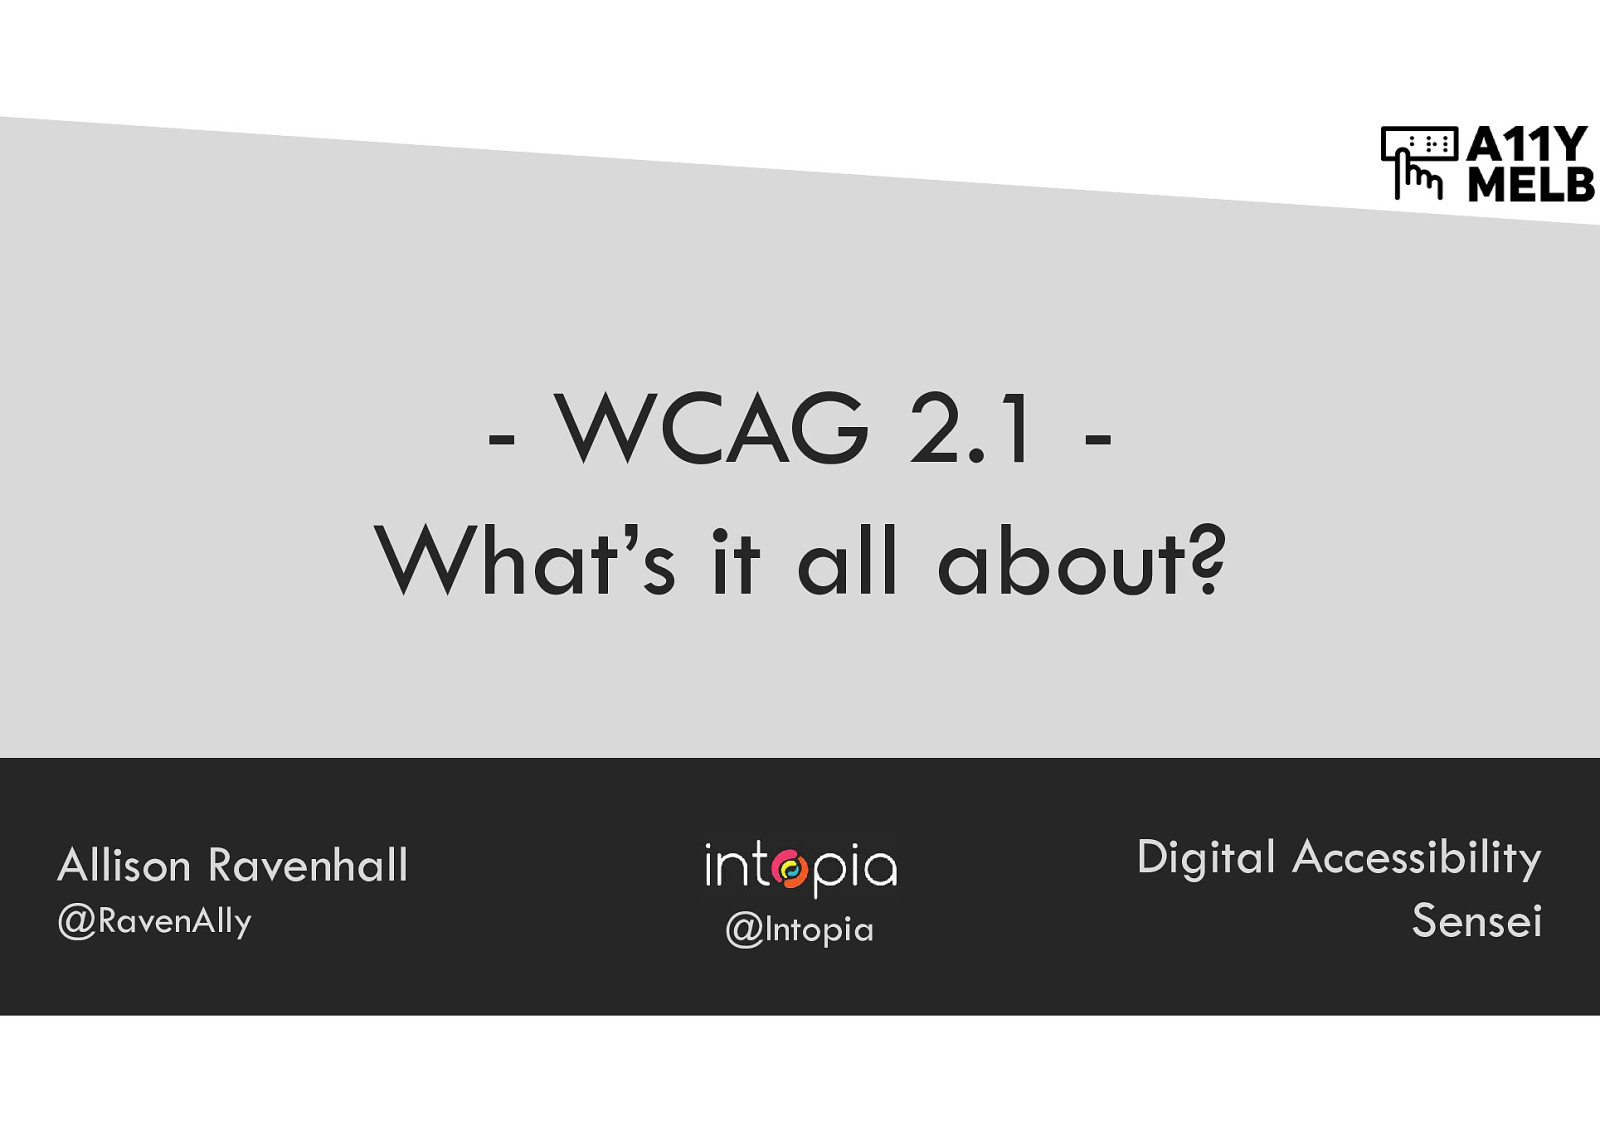 WCAG 2.1 - What's it all about?